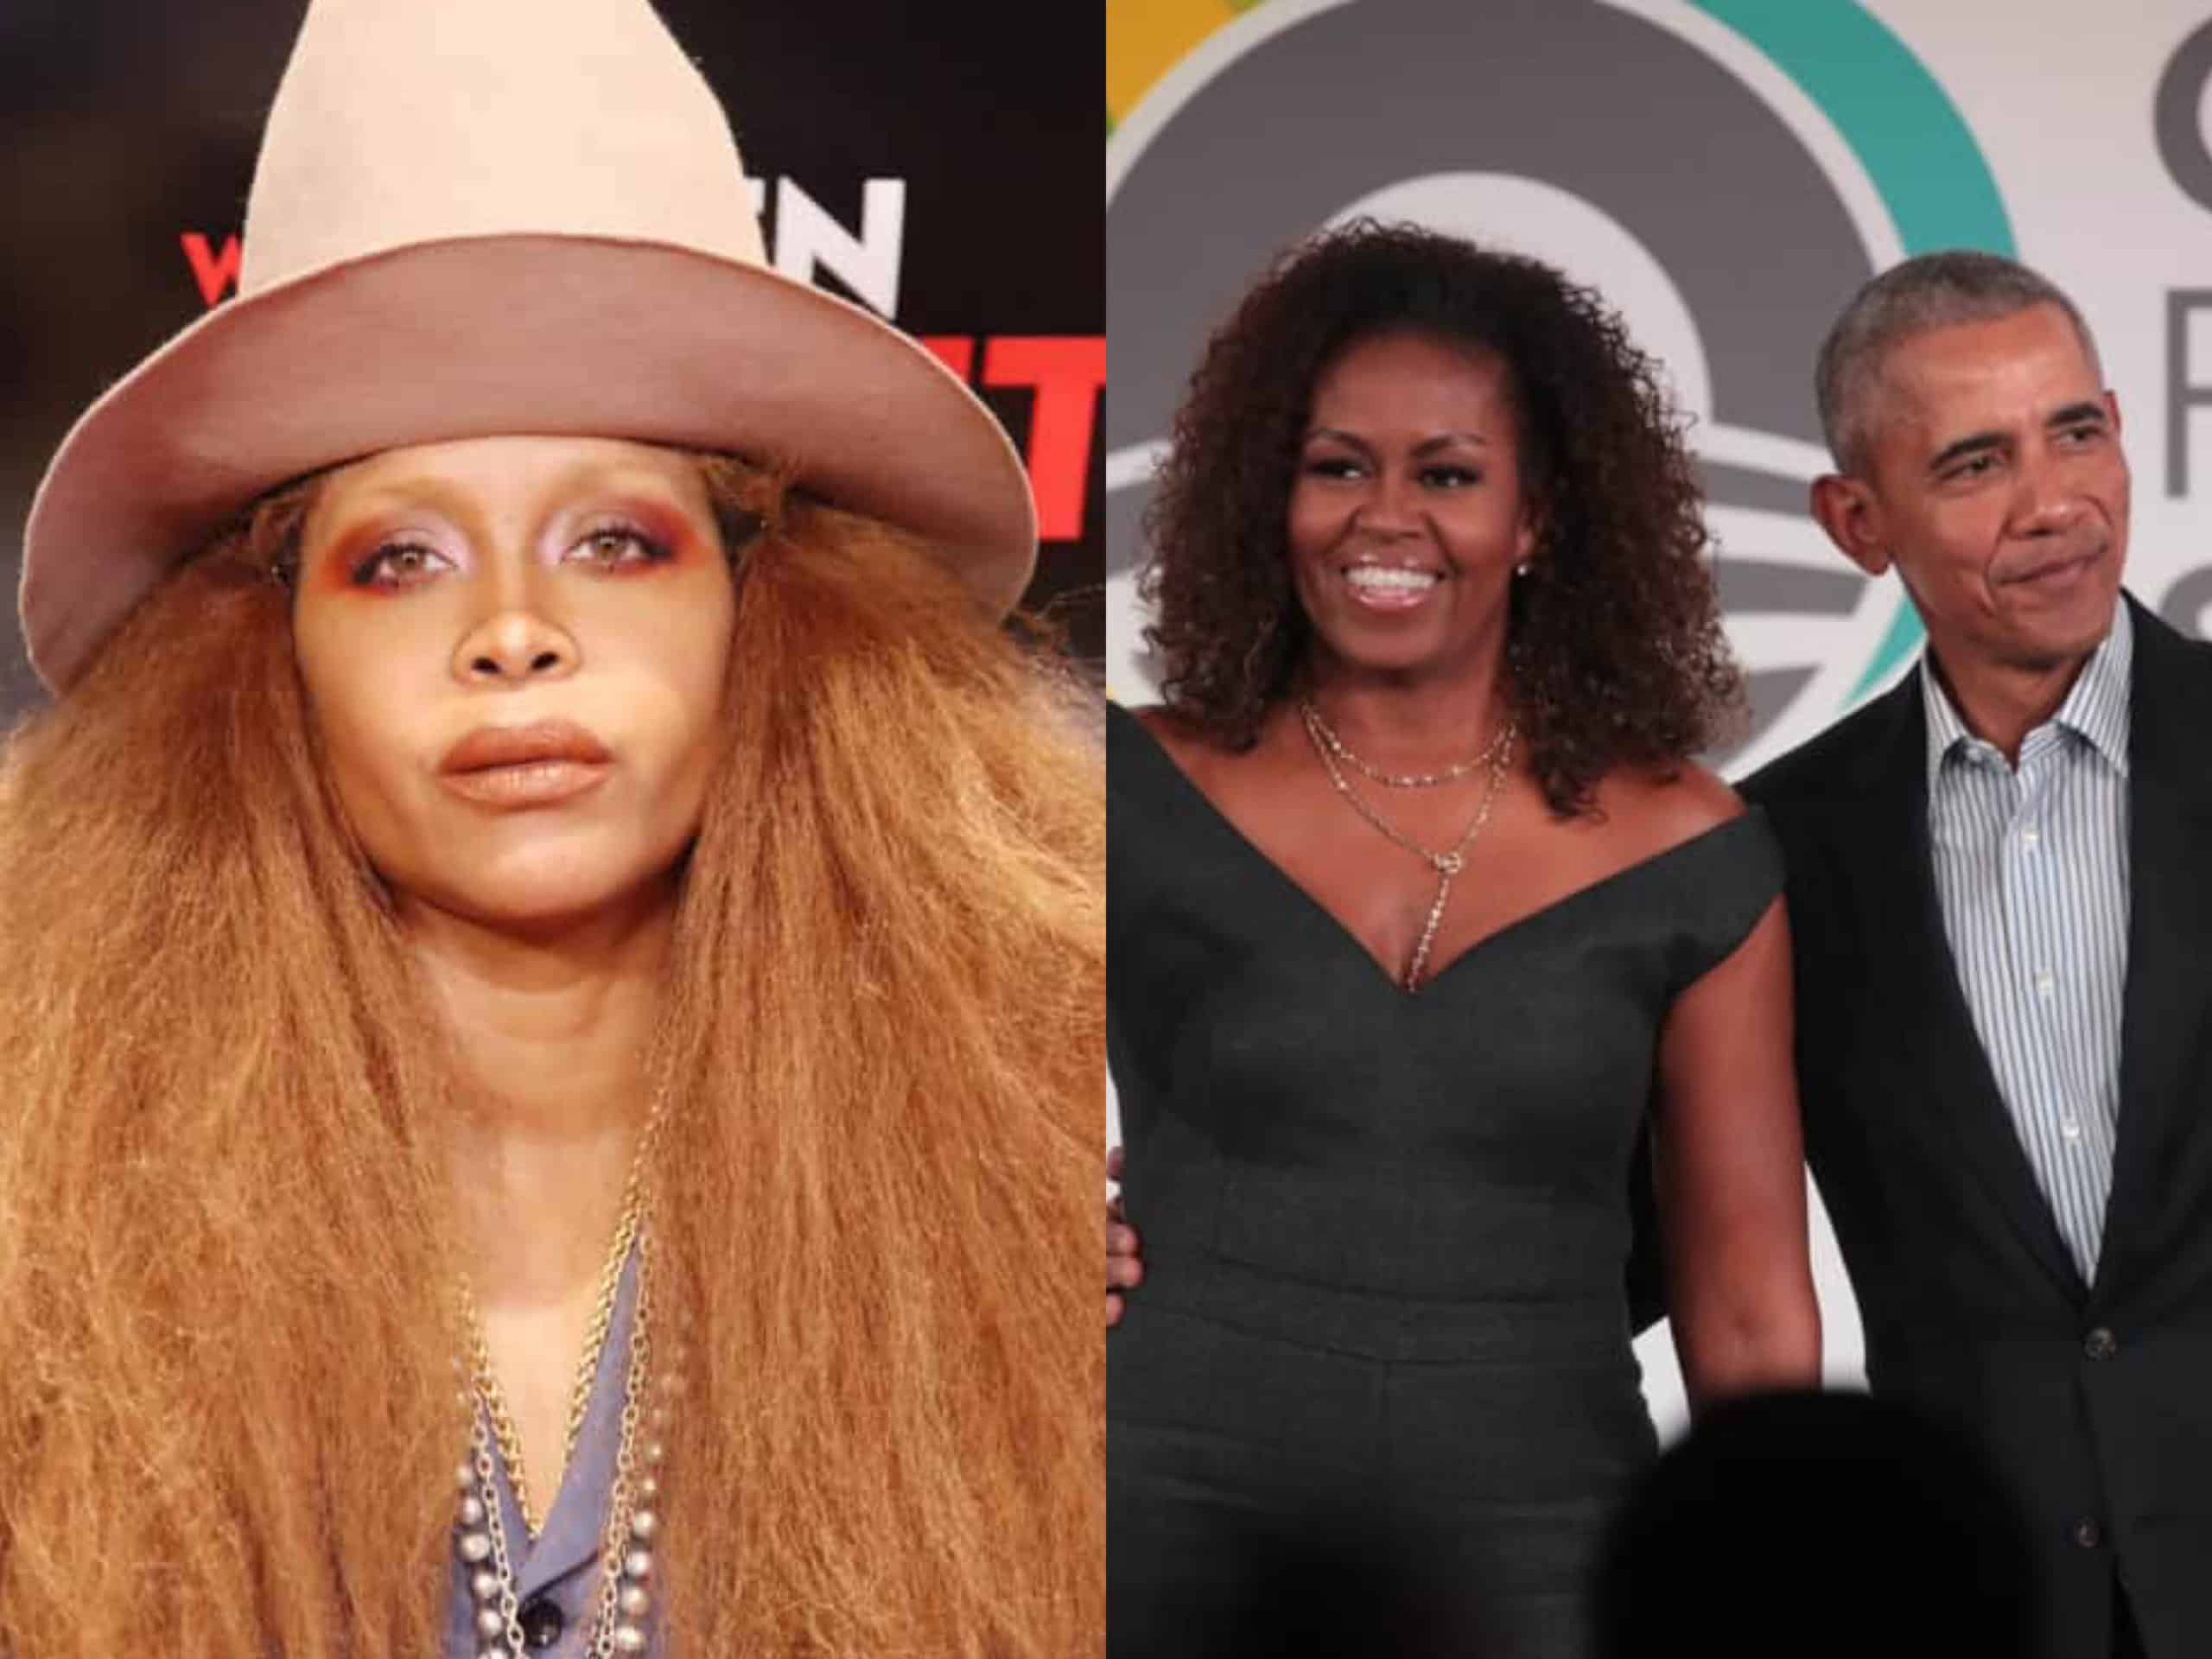 Erykah Badu Issues An Apology To The Obamas For Being A 'Terrible Guest' Following Recent Event